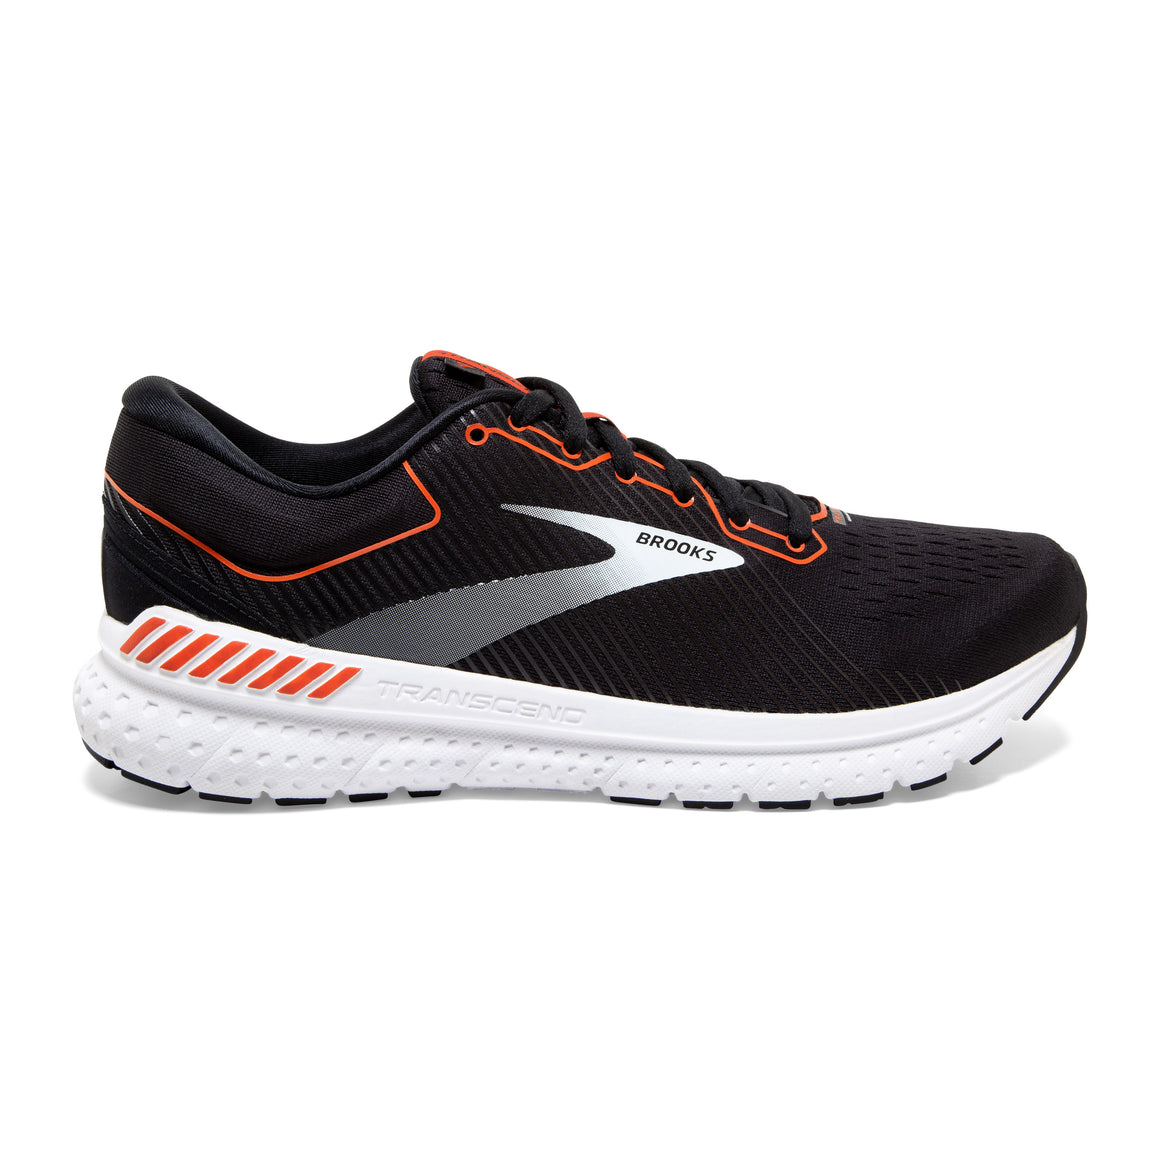 Transcend 7 Road Running Shoes for Men in Colour 043